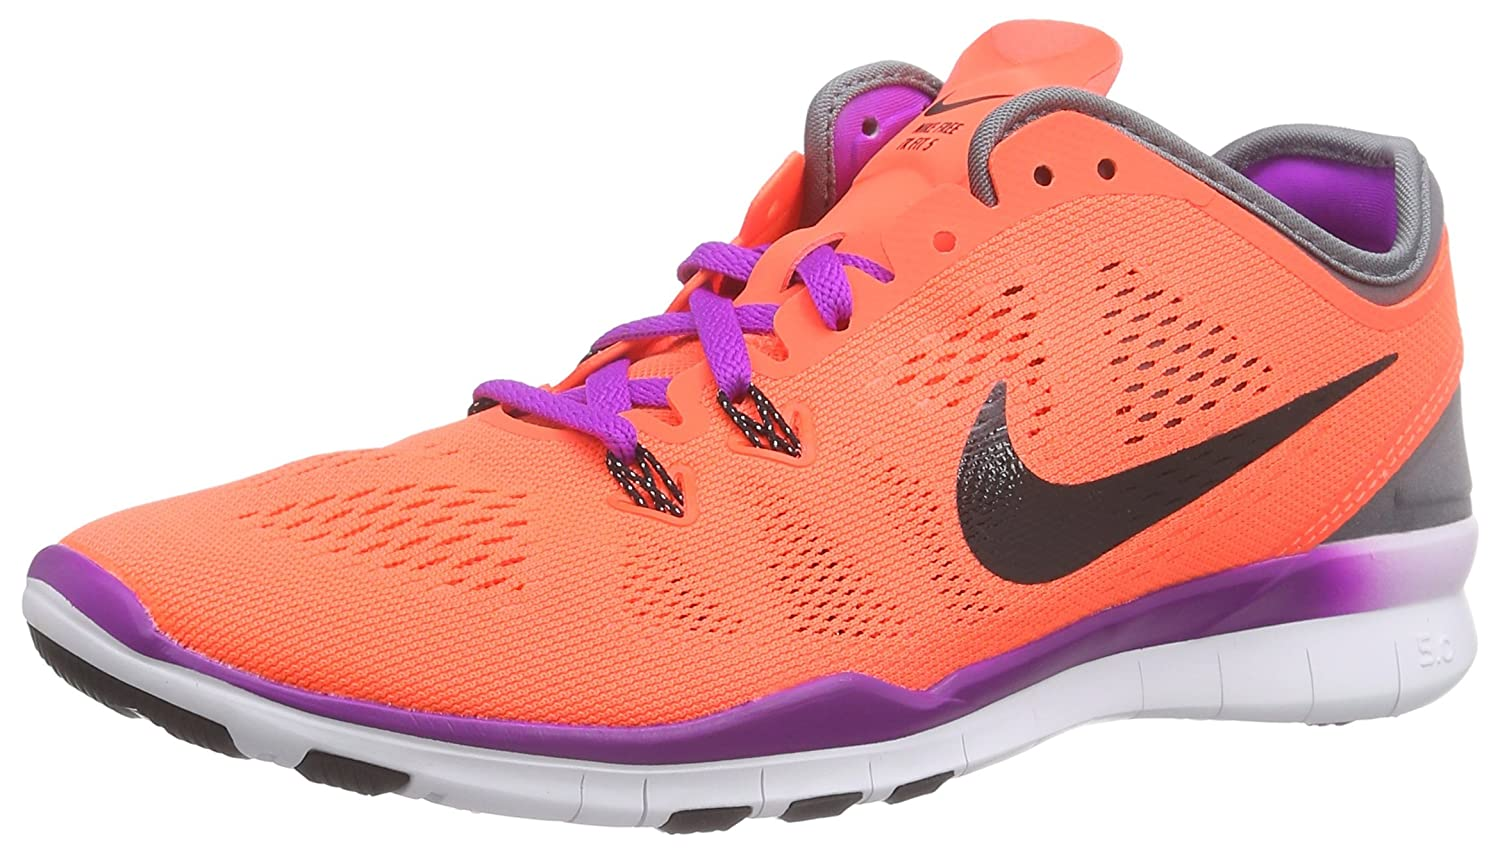 NIKE Men's Free 5.0 Tr Fit 5 Fabric Running Shoe B00VIRWXN6 7 B(M) US|Hyper Orange/Grey/Vivid Purple/Black